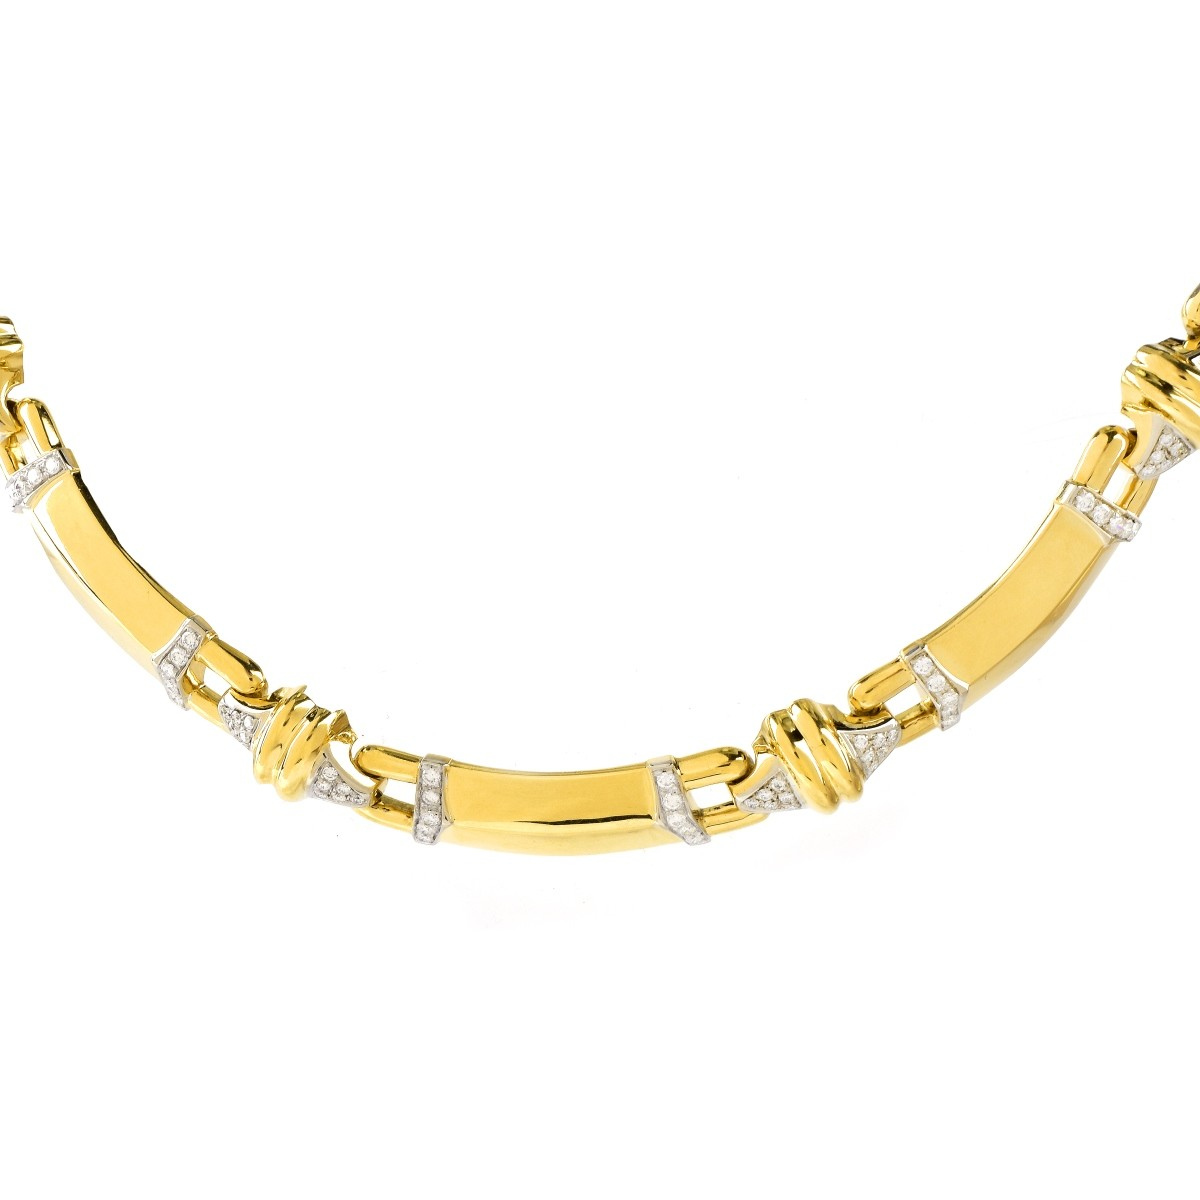 5.0ct TW Diamond and 18K Gold Necklace